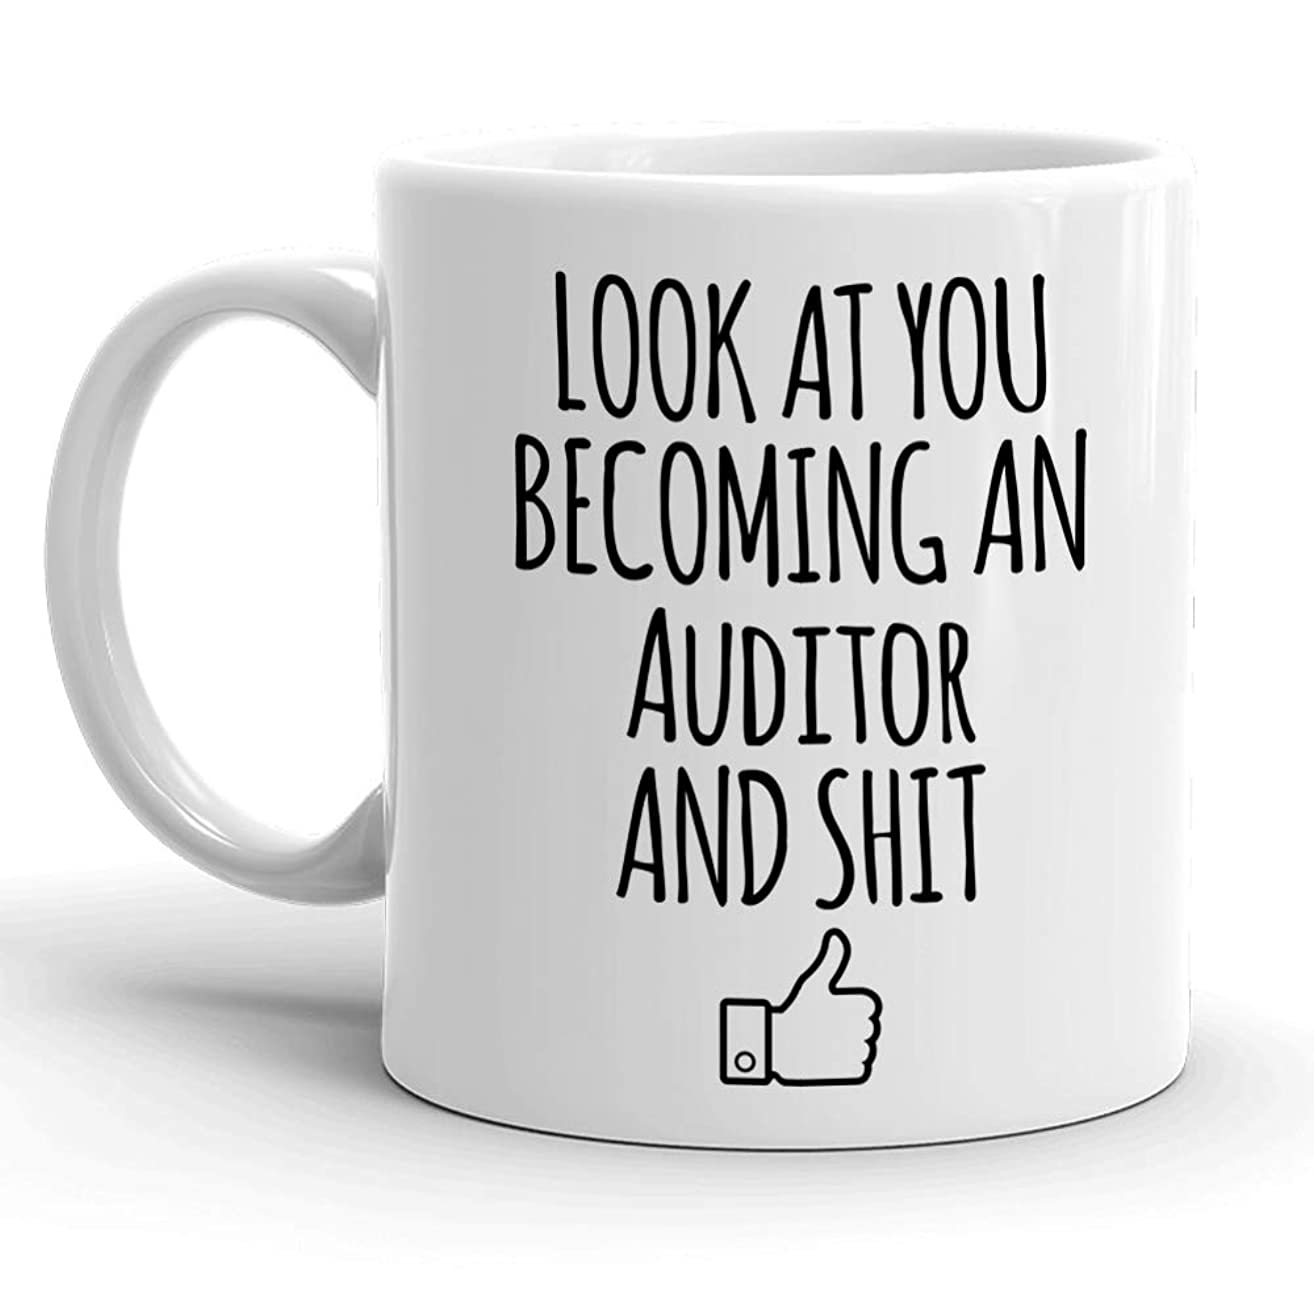 Look At You Becoming An Auditor And Shit Good Job White Ceramic 11 oz Coffee Mug, Unique Funny St Patrick's Day, Christmas, Xmas, Birthday Gifts, Hot Rude Sarcastic Mugs Memes Tea Cup